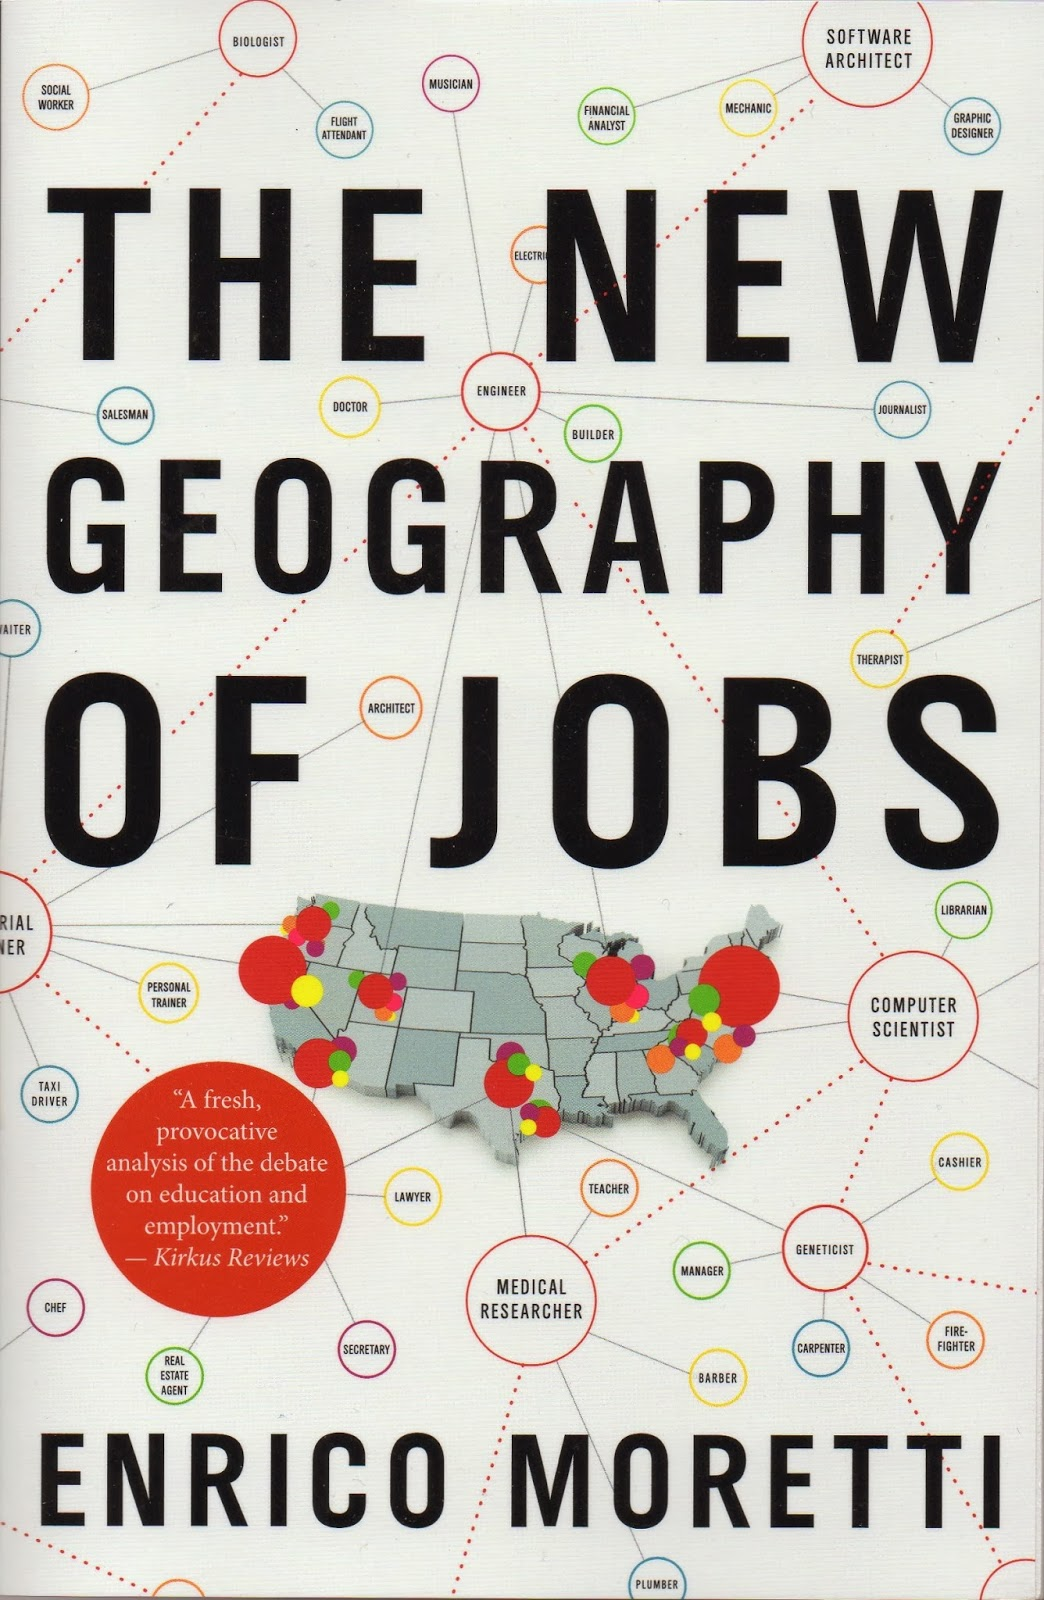 Enrico Moretti Is A Professor Of Economics At The University California Berkely And His Book New Geography Jobs 2012 Describes